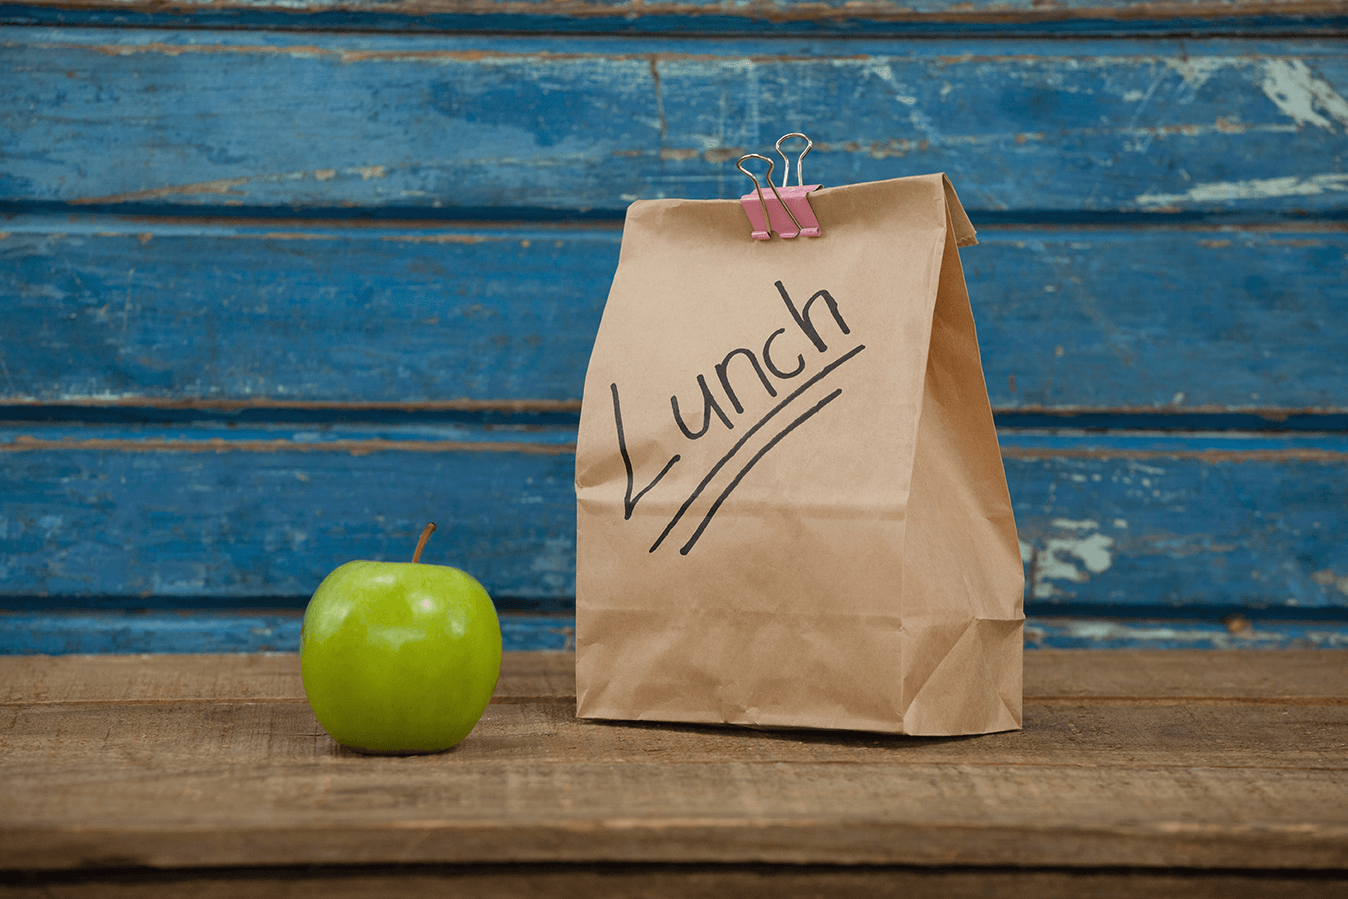 Green apple and brown paper bag with the word lunch on it.